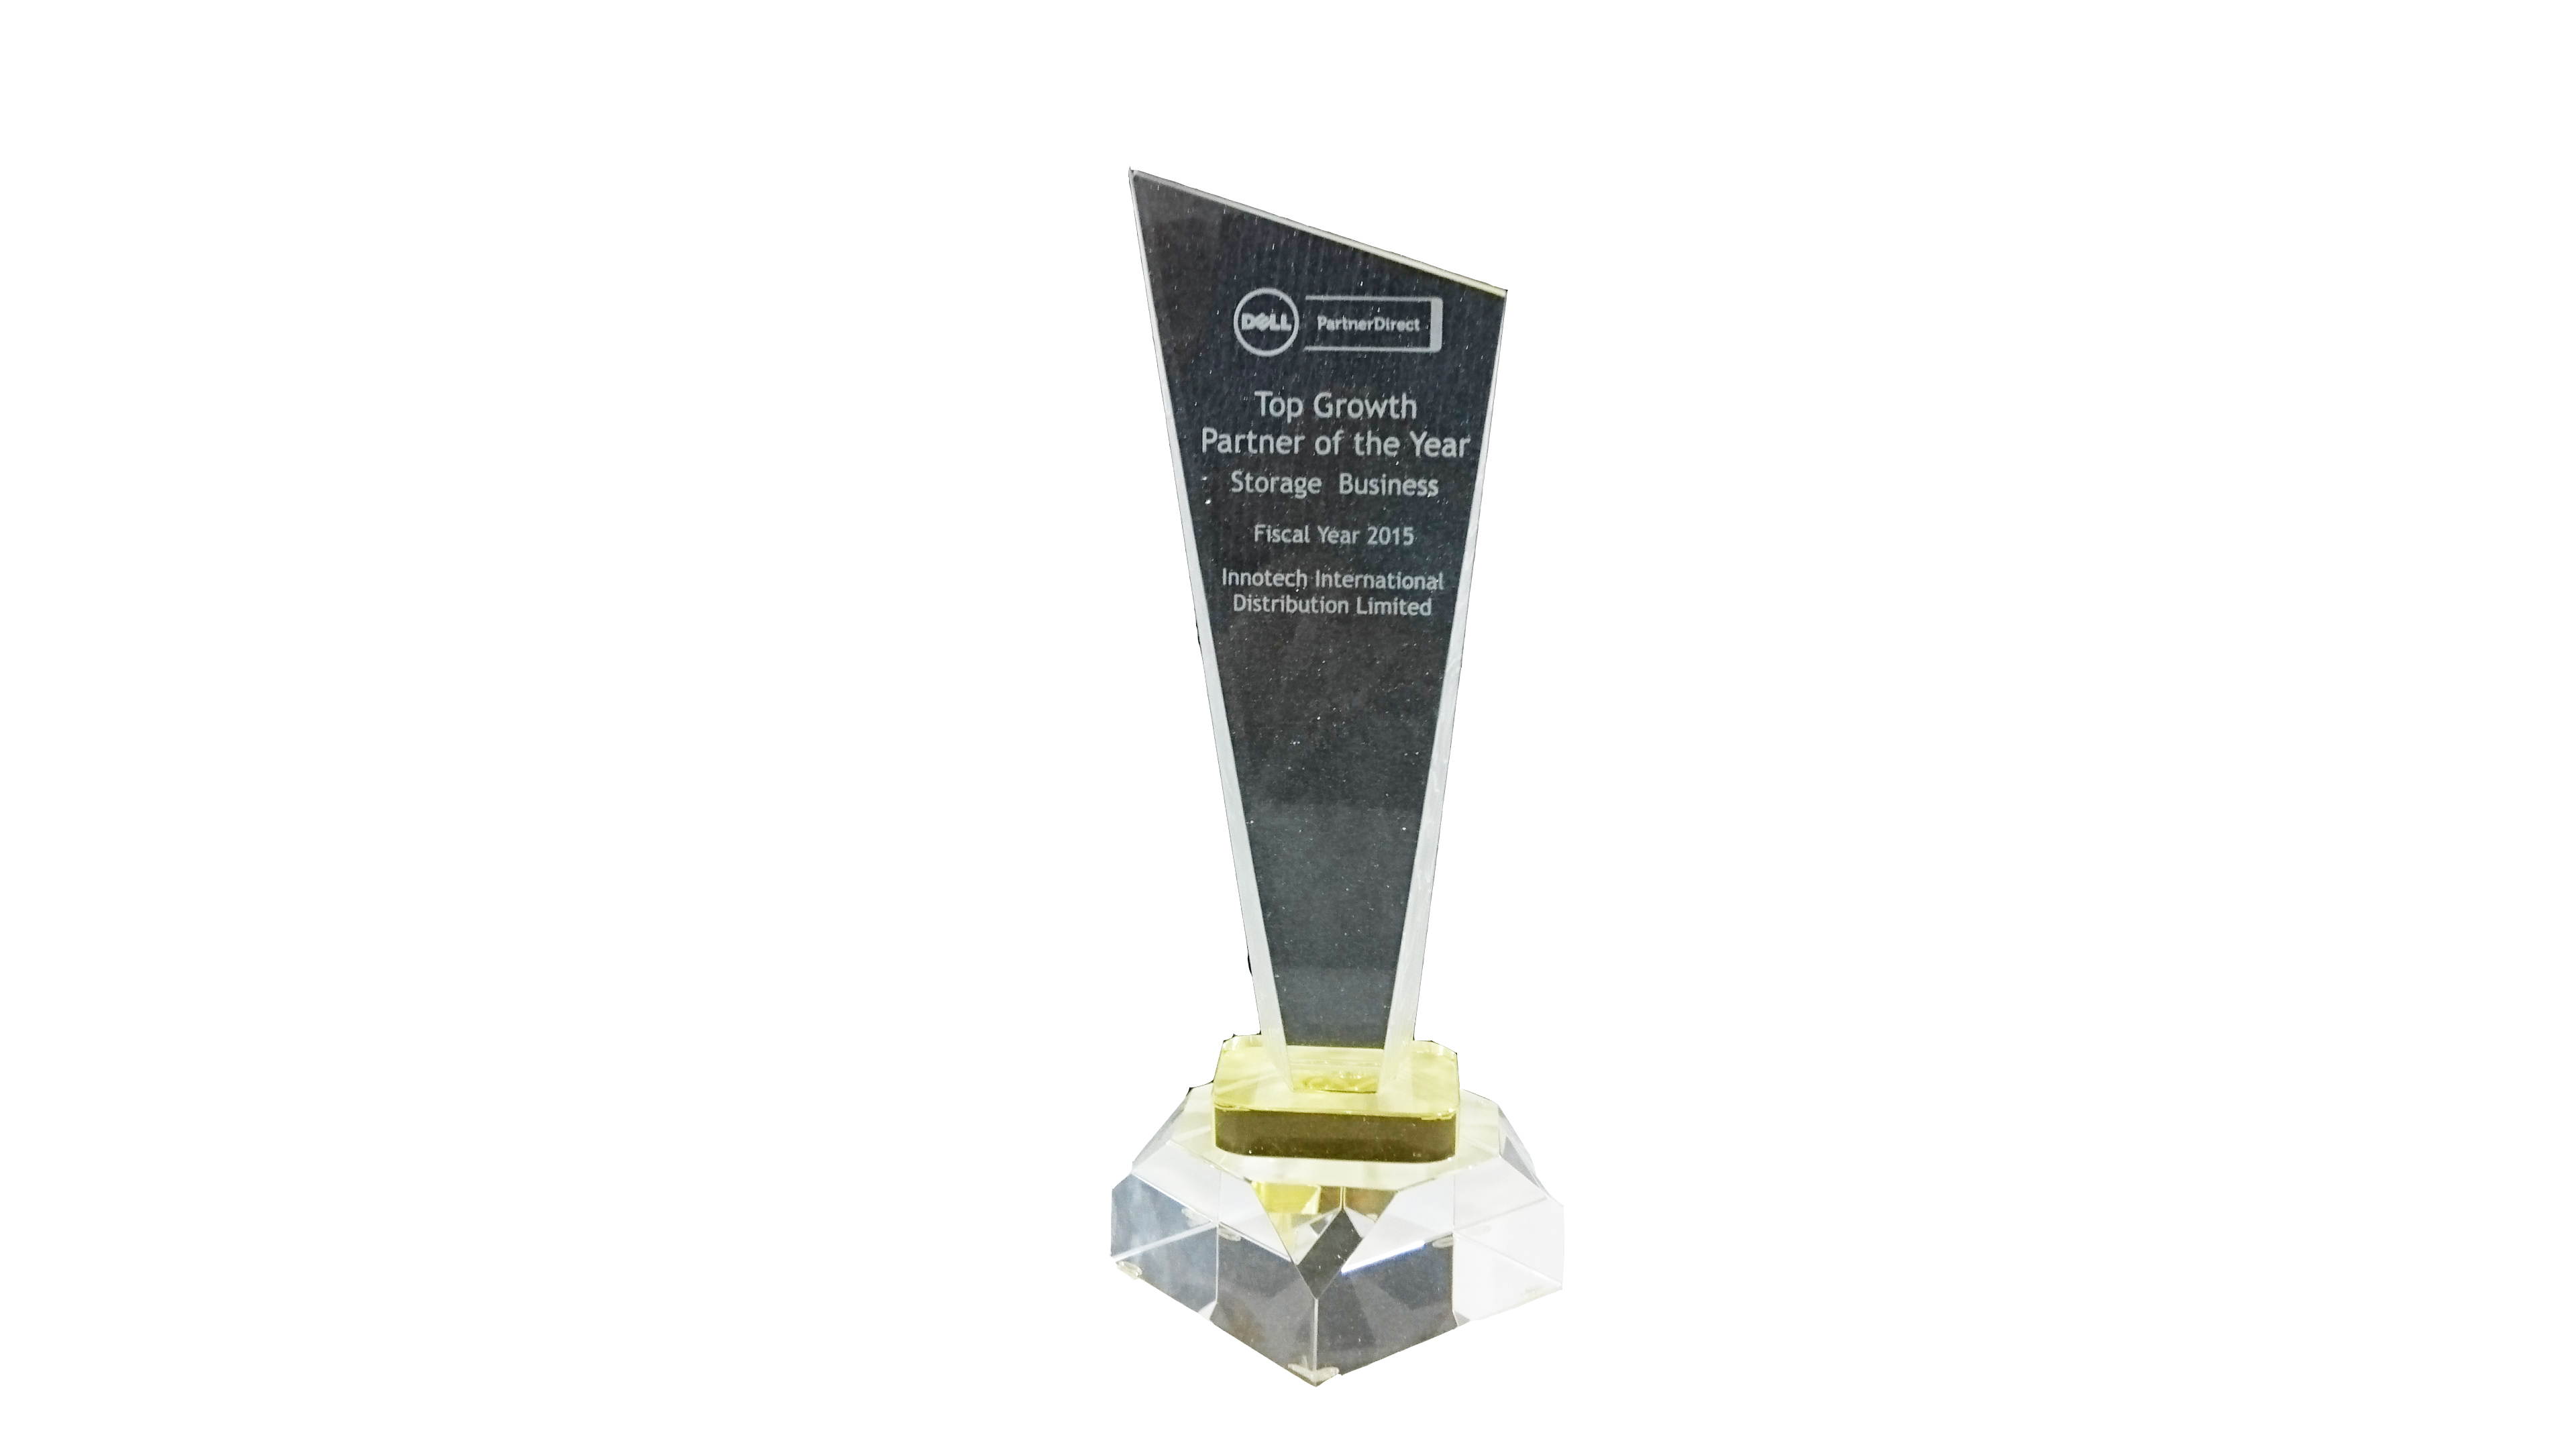 Top Growth Partner of the Year (Storage Business) 2015